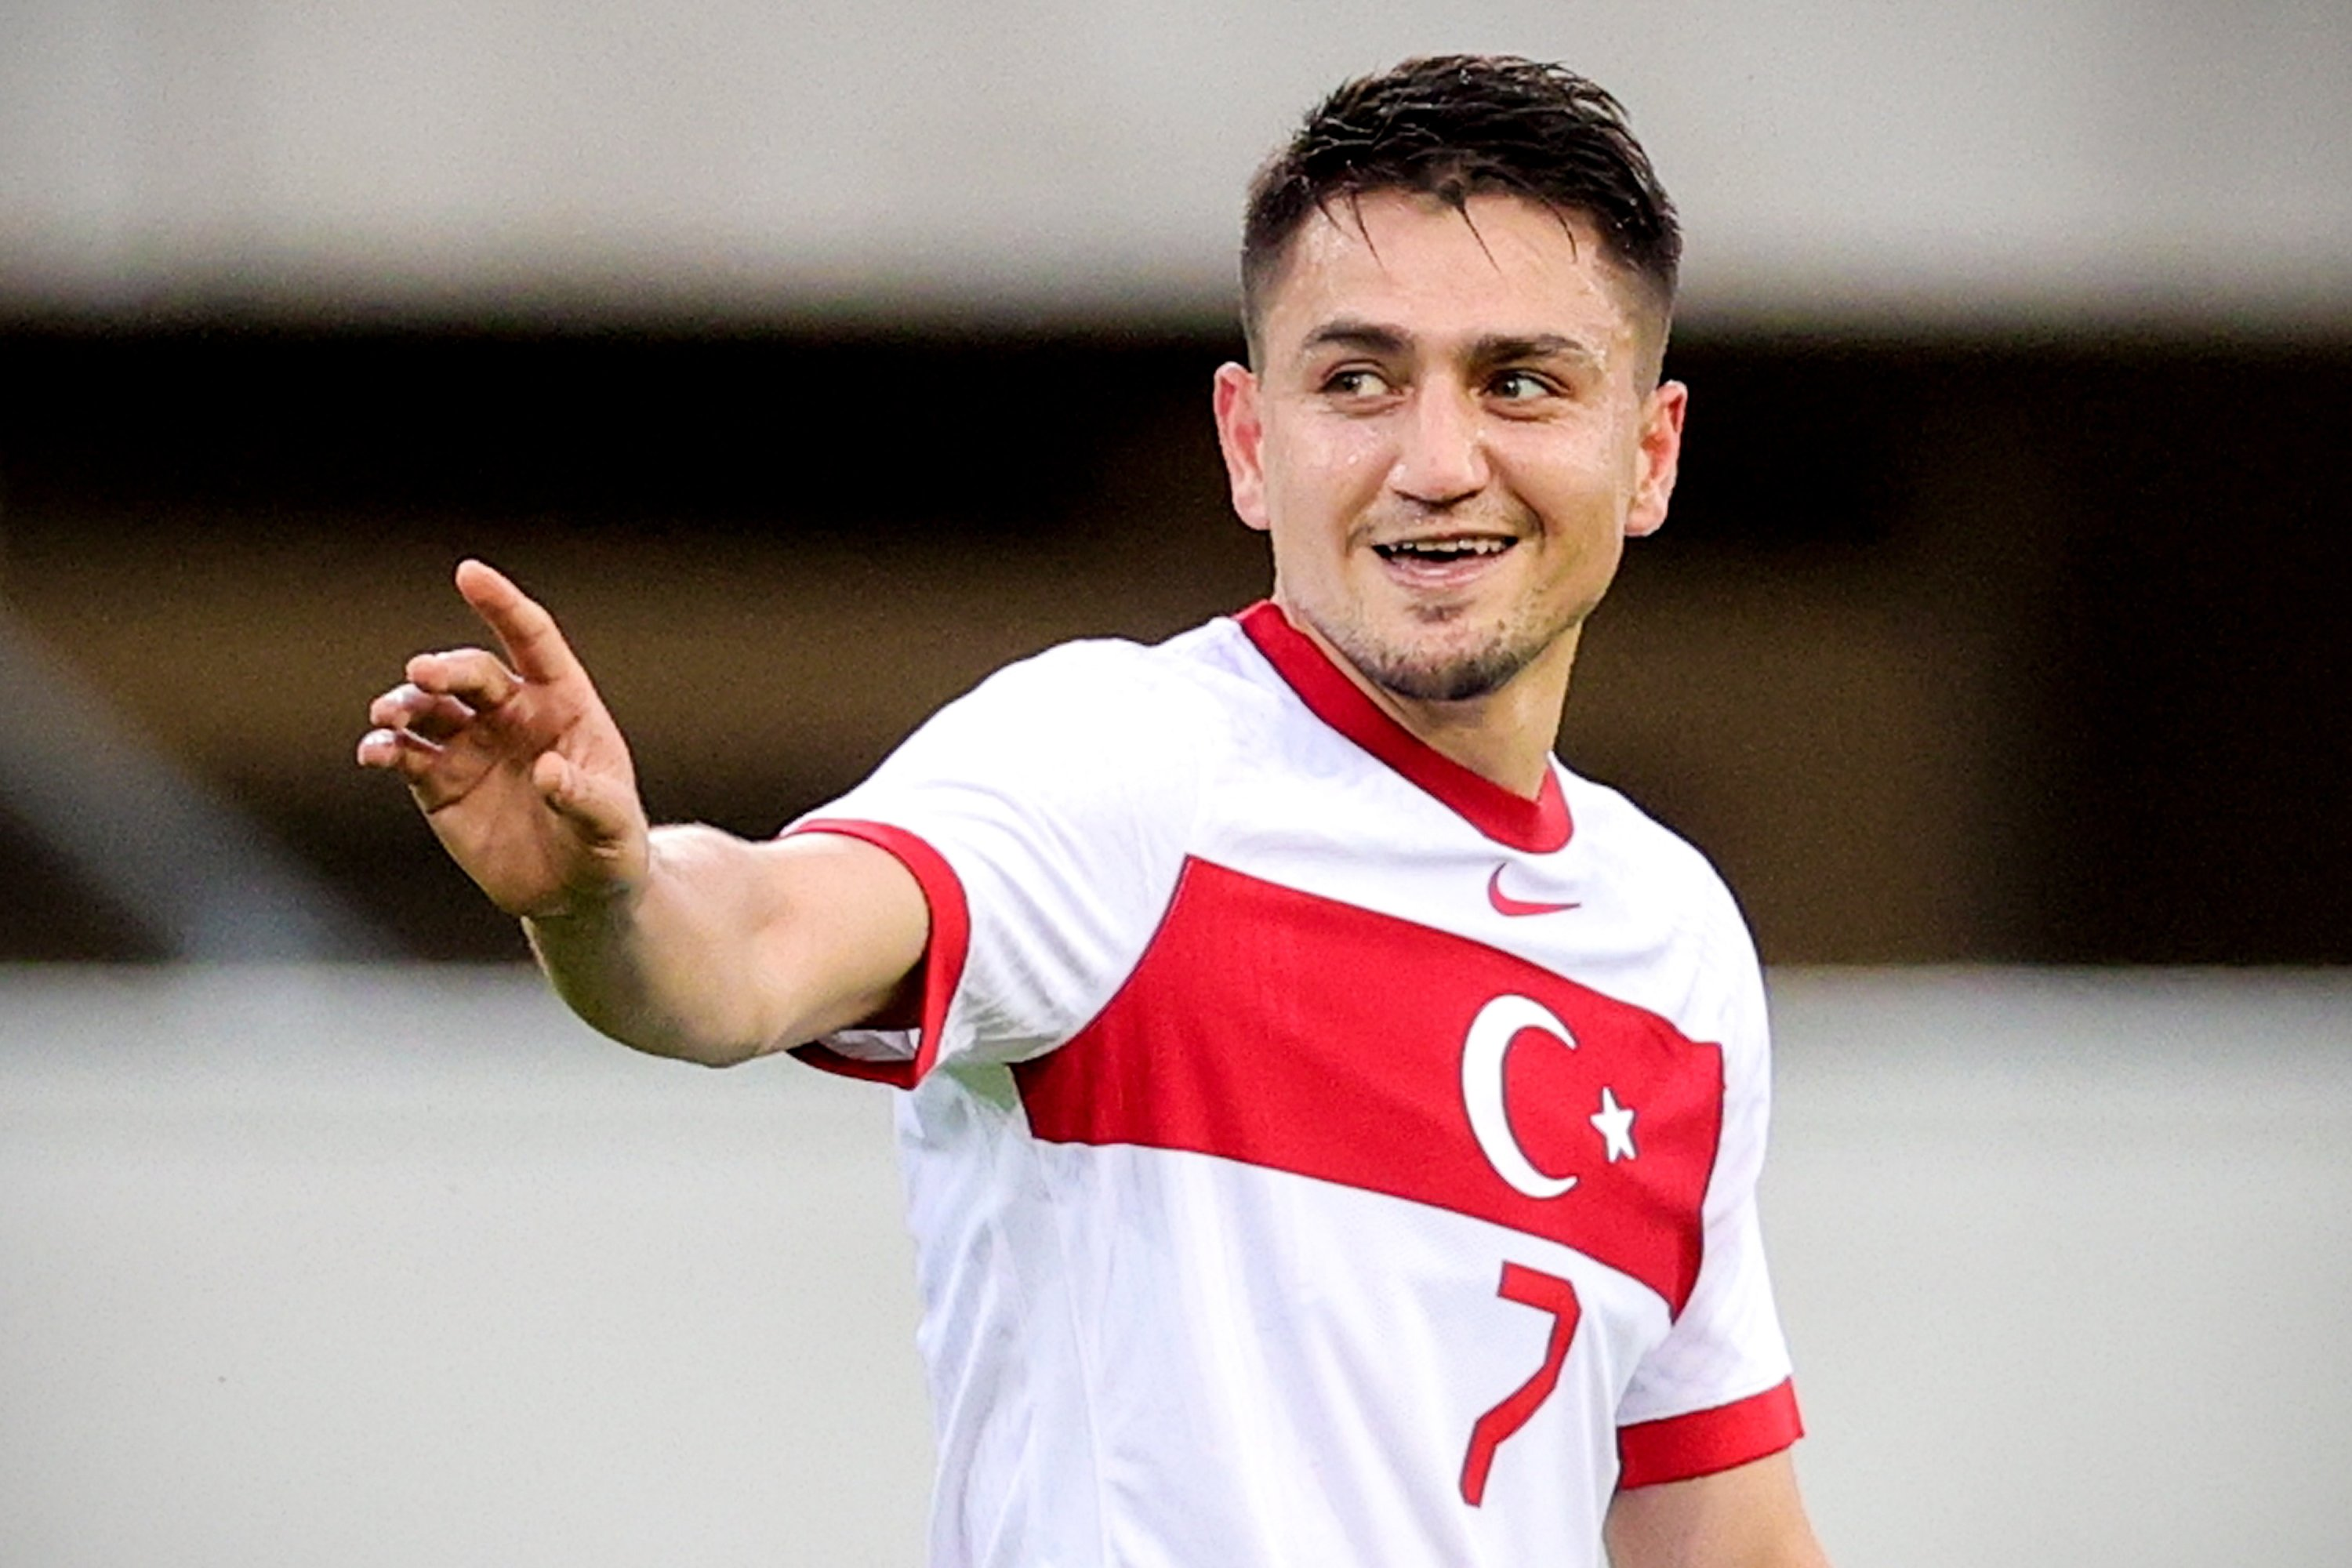 Turkey's Cengiz Ünder celebrates after securing the 2-0 lead during the International Friendly soccer match between Turkey and Moldova in Paderborn, Germany, June 3, 2021. (EPA Photo)